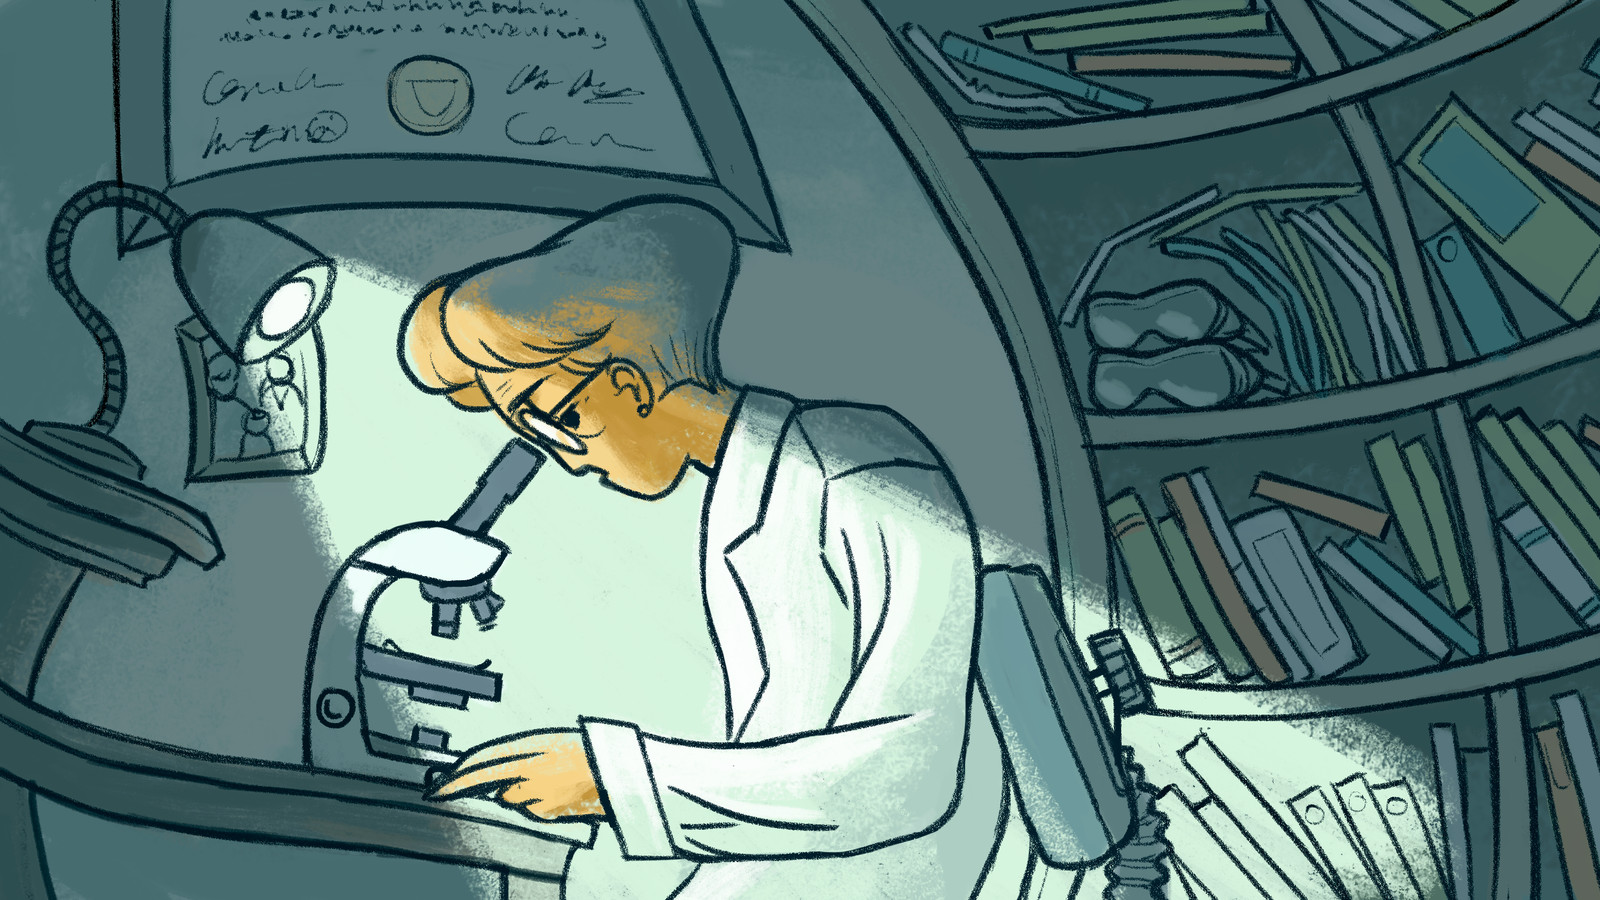 The 7 biggest problems facing science, according to 270 scientists - Vox